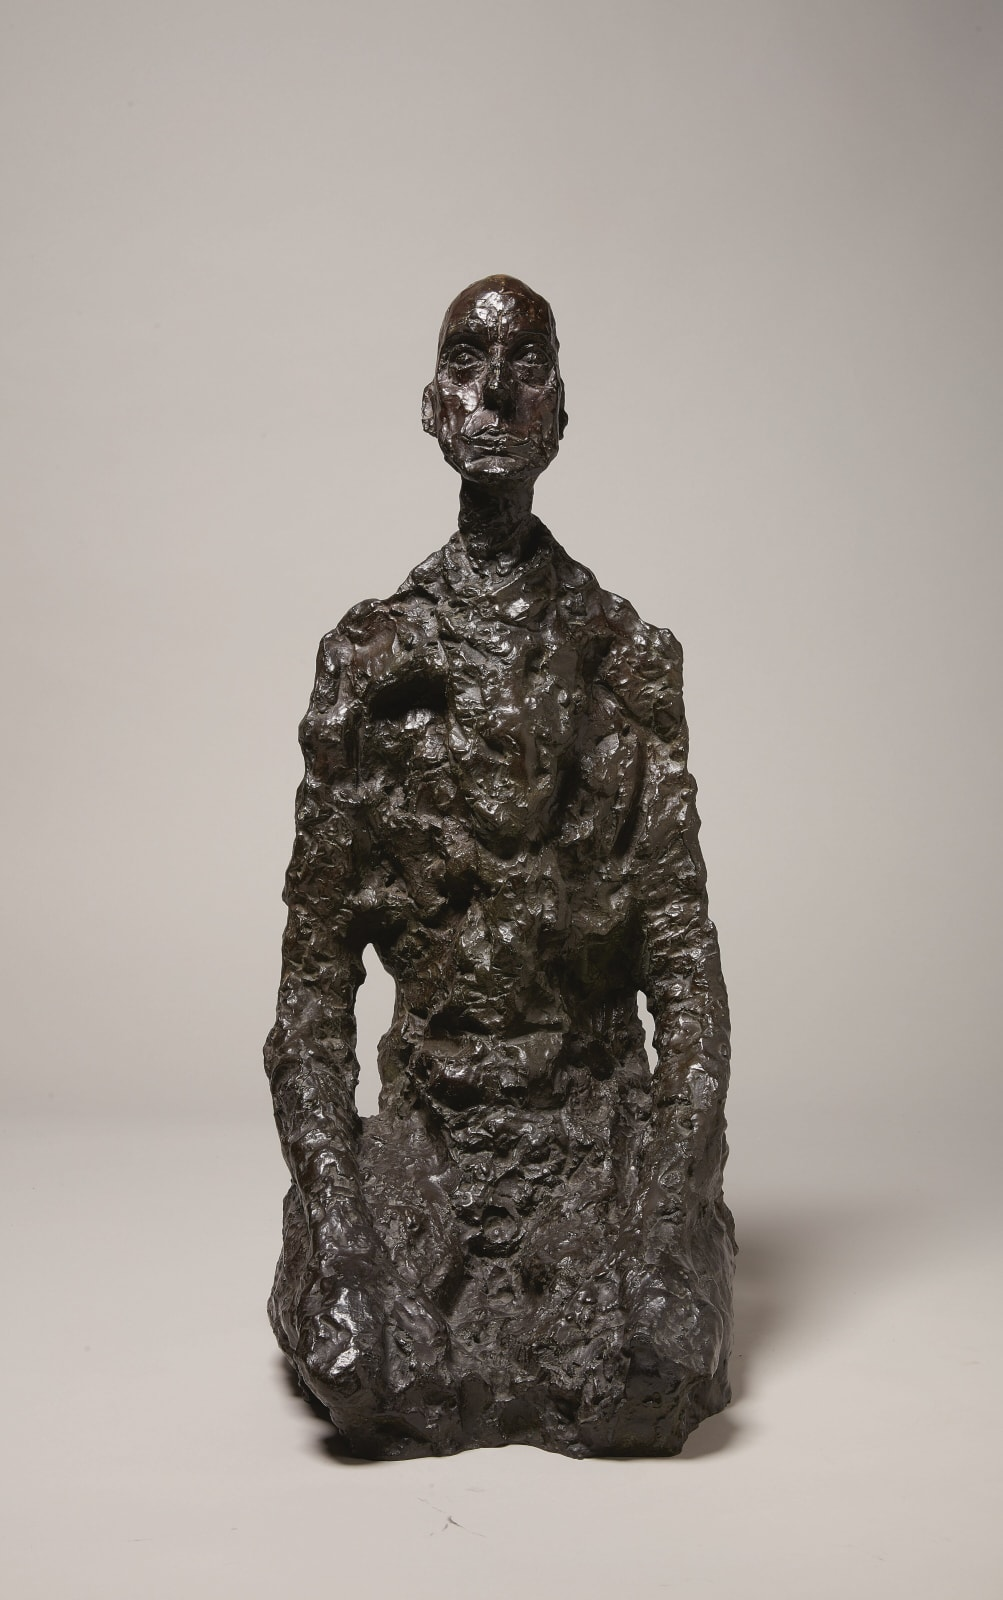 Alberto Giacometti Buste d'homme assis (Lotar III) conceived in 1956-66; this example cast in 1973 bronze 13.5 x 10 x 25 1/8 inches 34.3 x 25.4 x 63.8 cm More Info